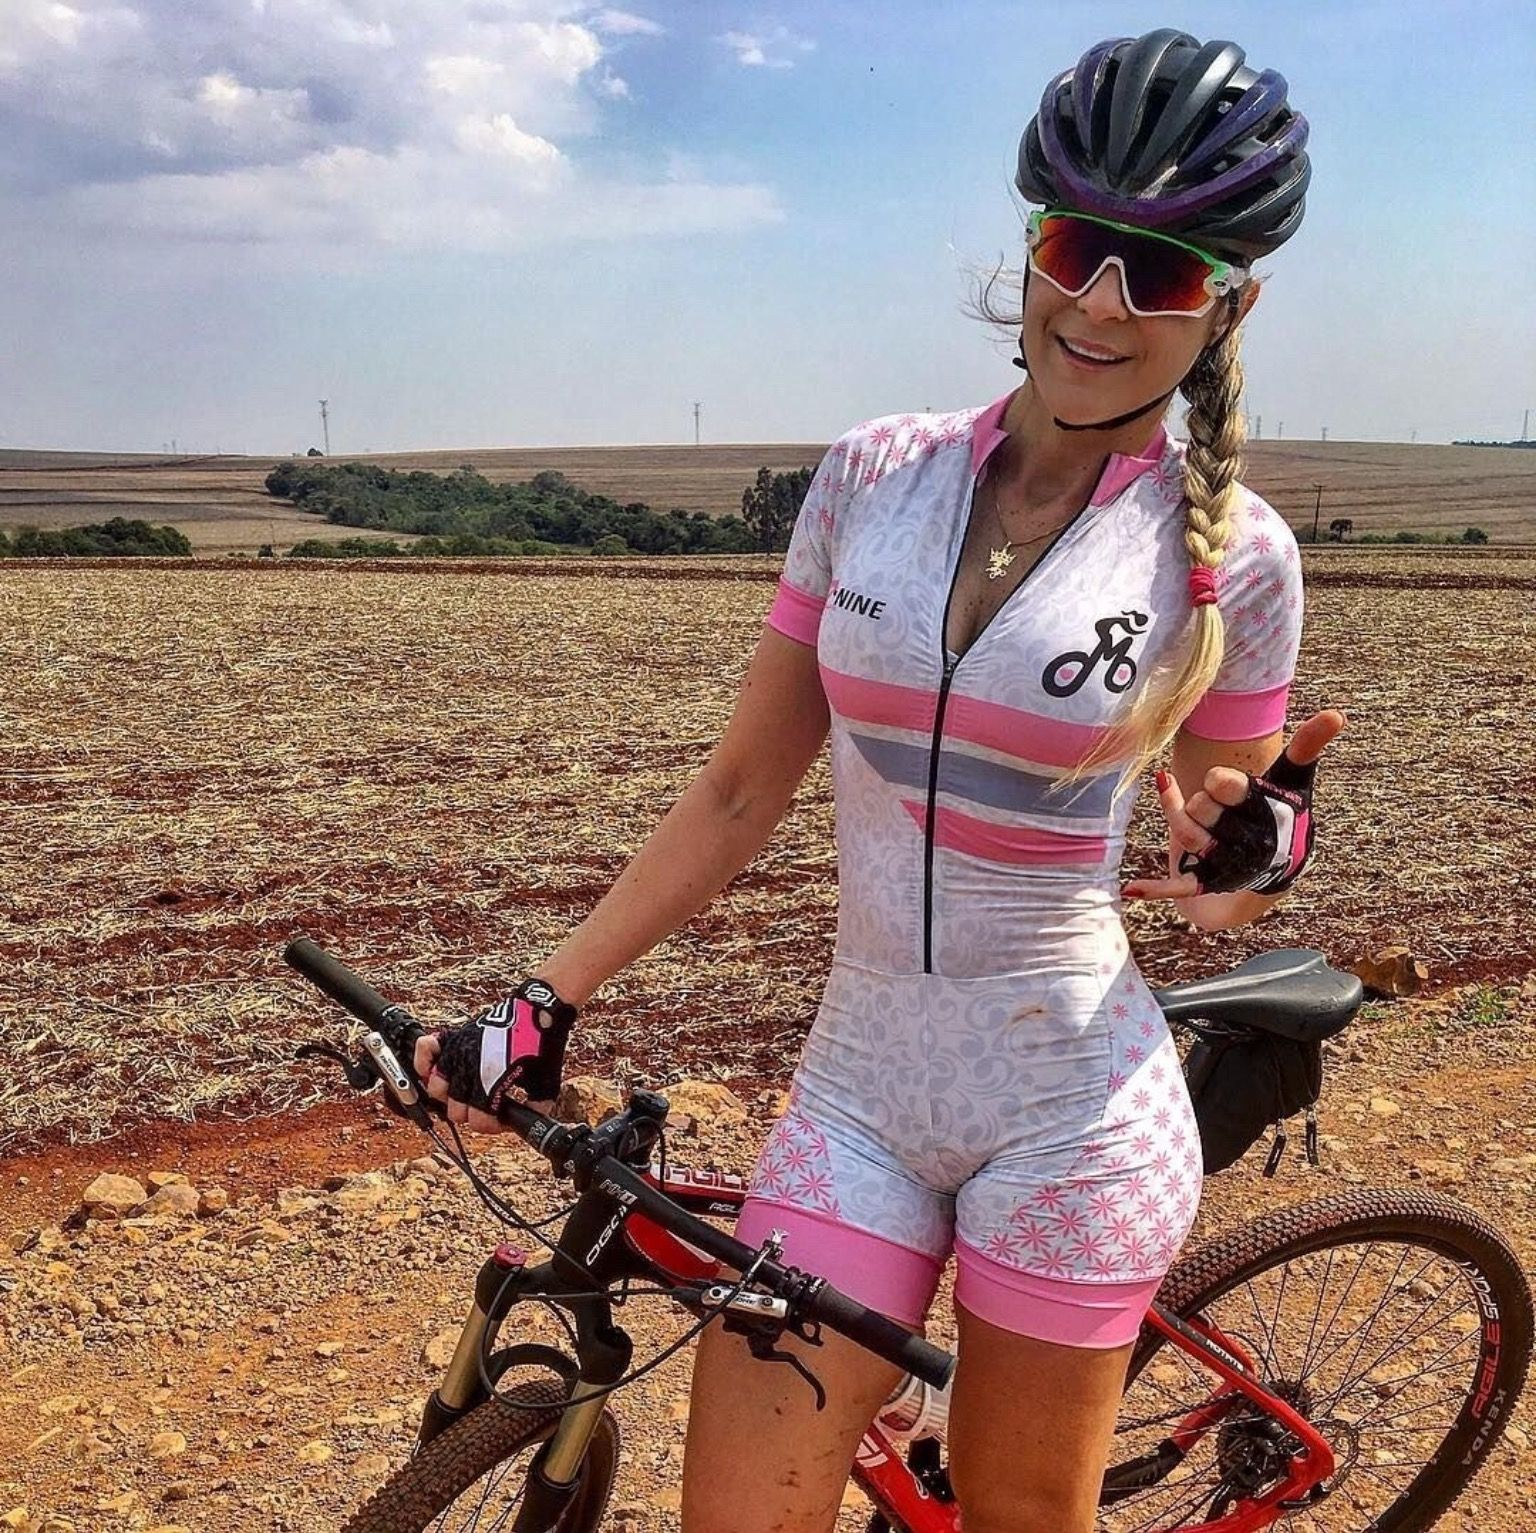 Pin by Big Pete on Cycling | Cycling girls, Cycling outfit